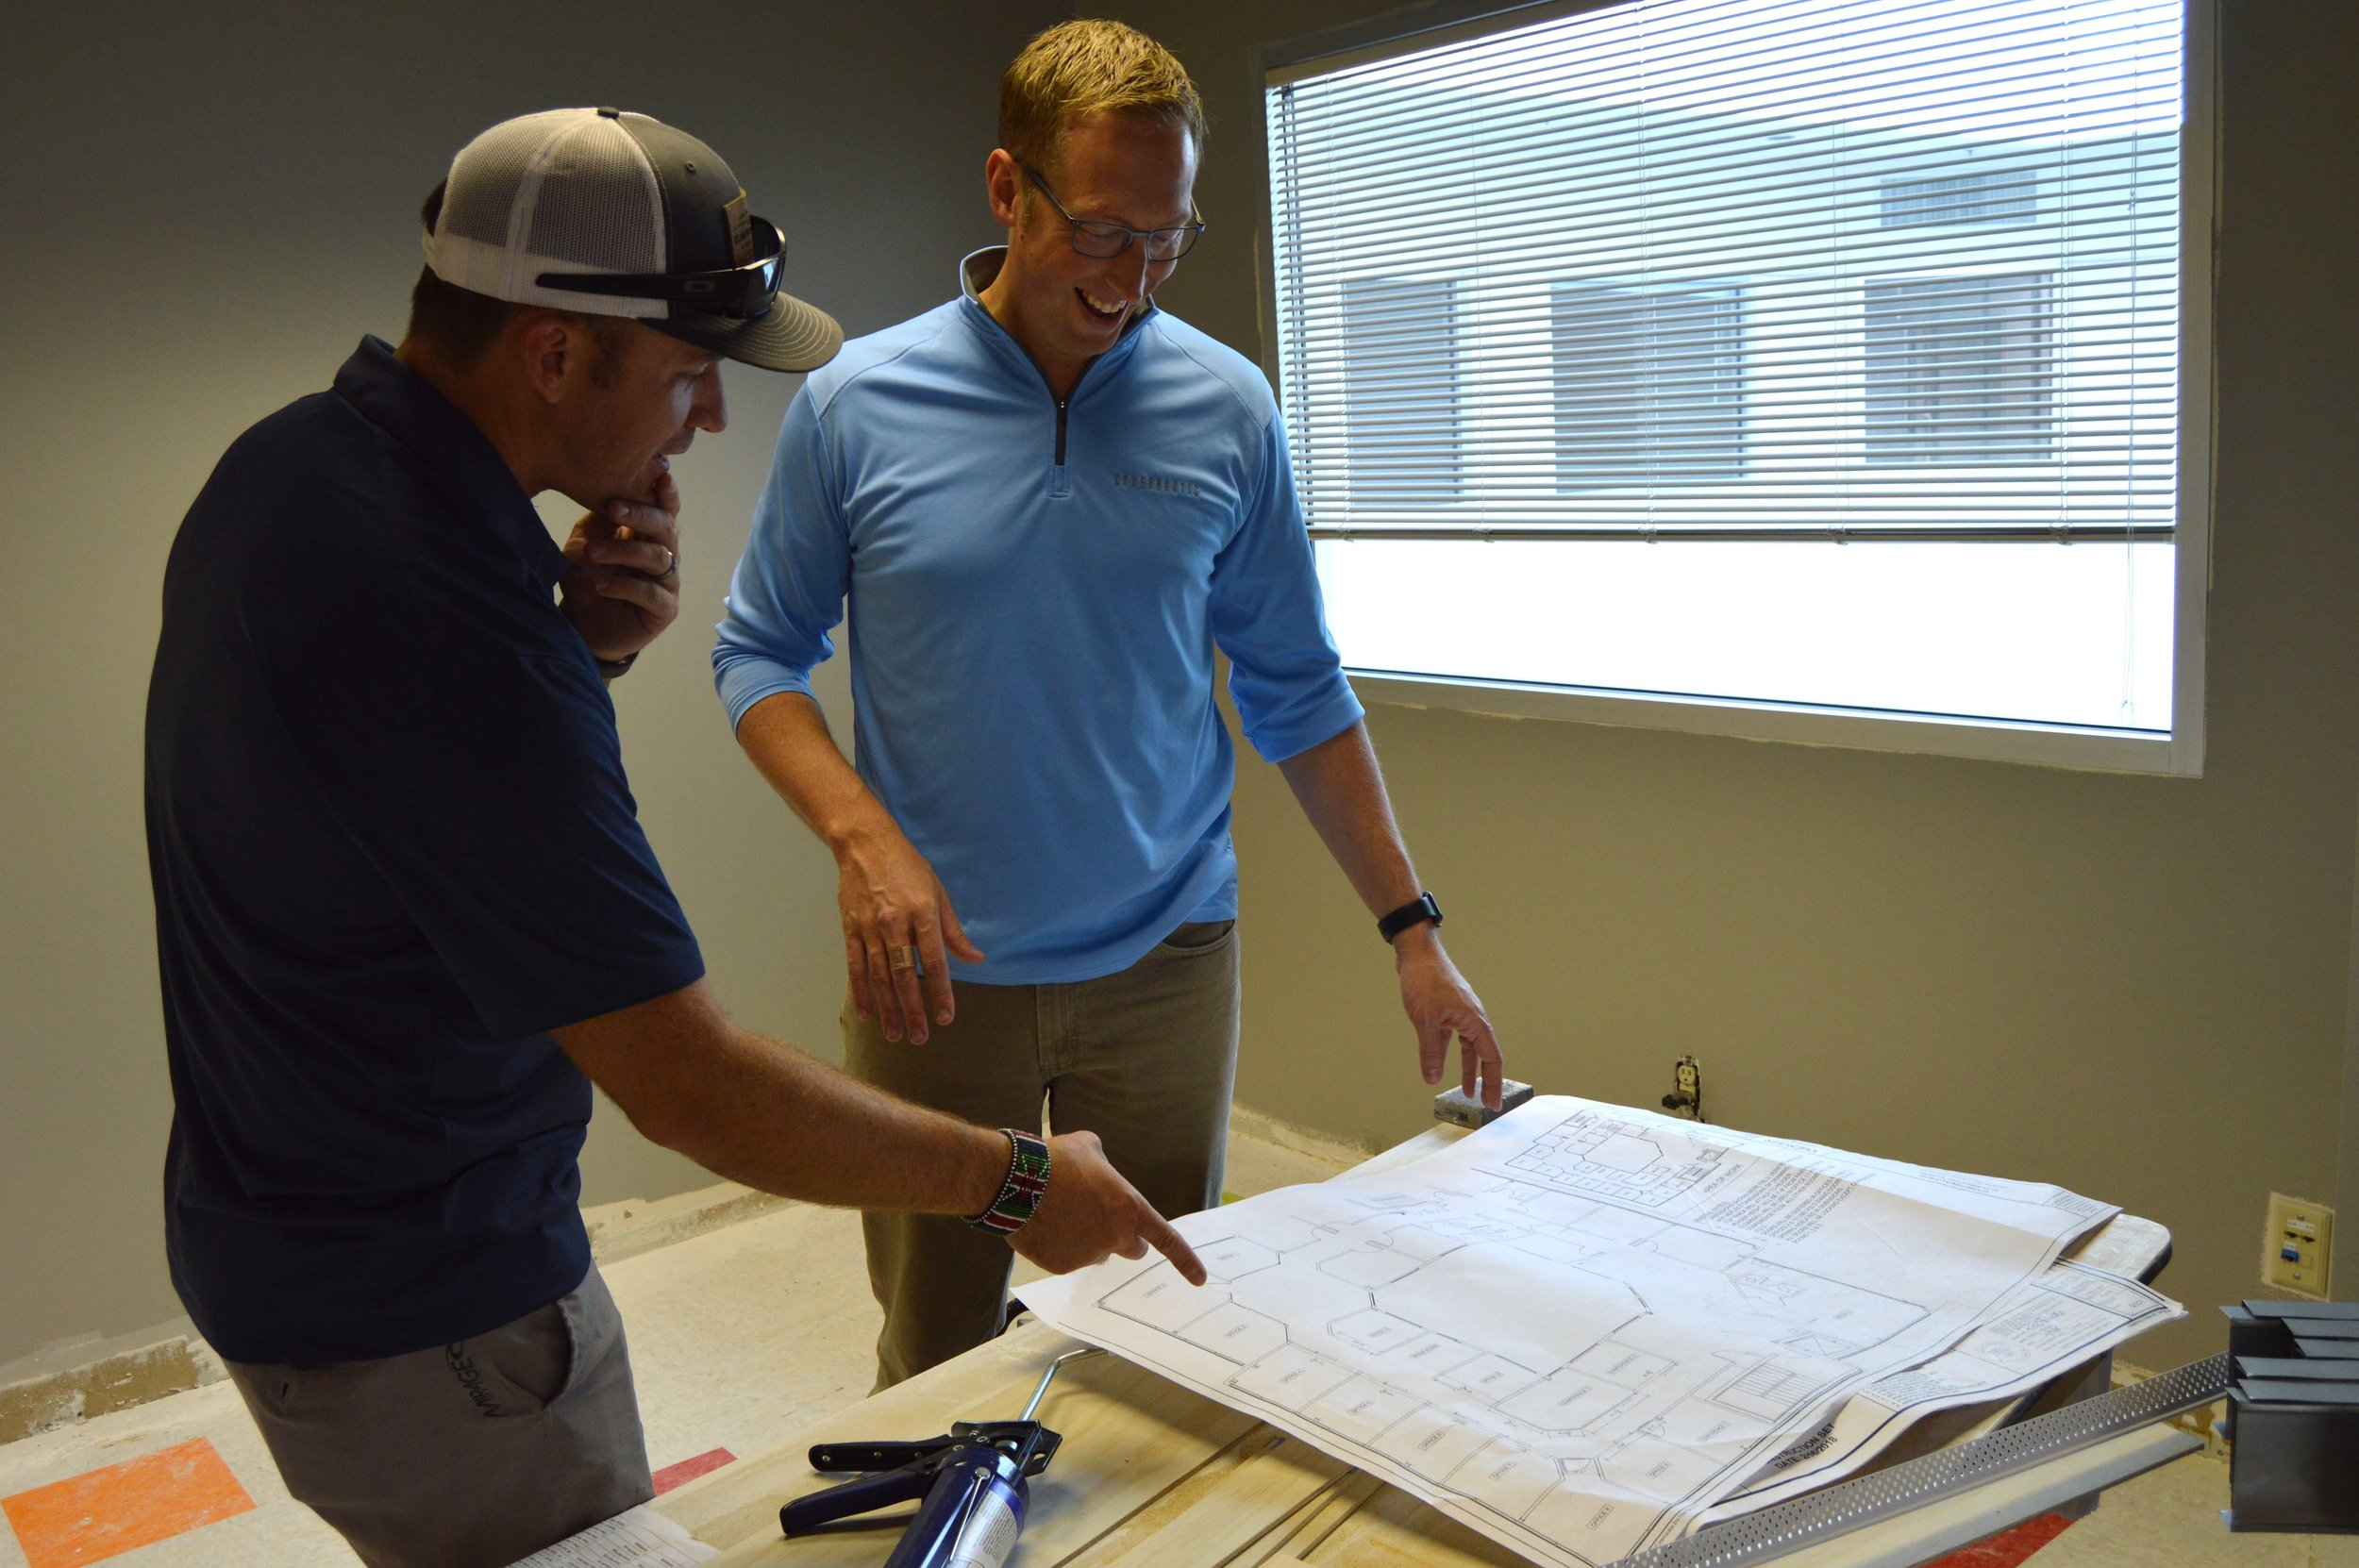 Cybernautic Founder and CEO Chad Parker (Left) and Vice President and Chief Potential Officer Robbie Osenga review renovation plans for their new offices on Empire Street in Bloomington. (Photo: Breanna Grow/AdaptBN)